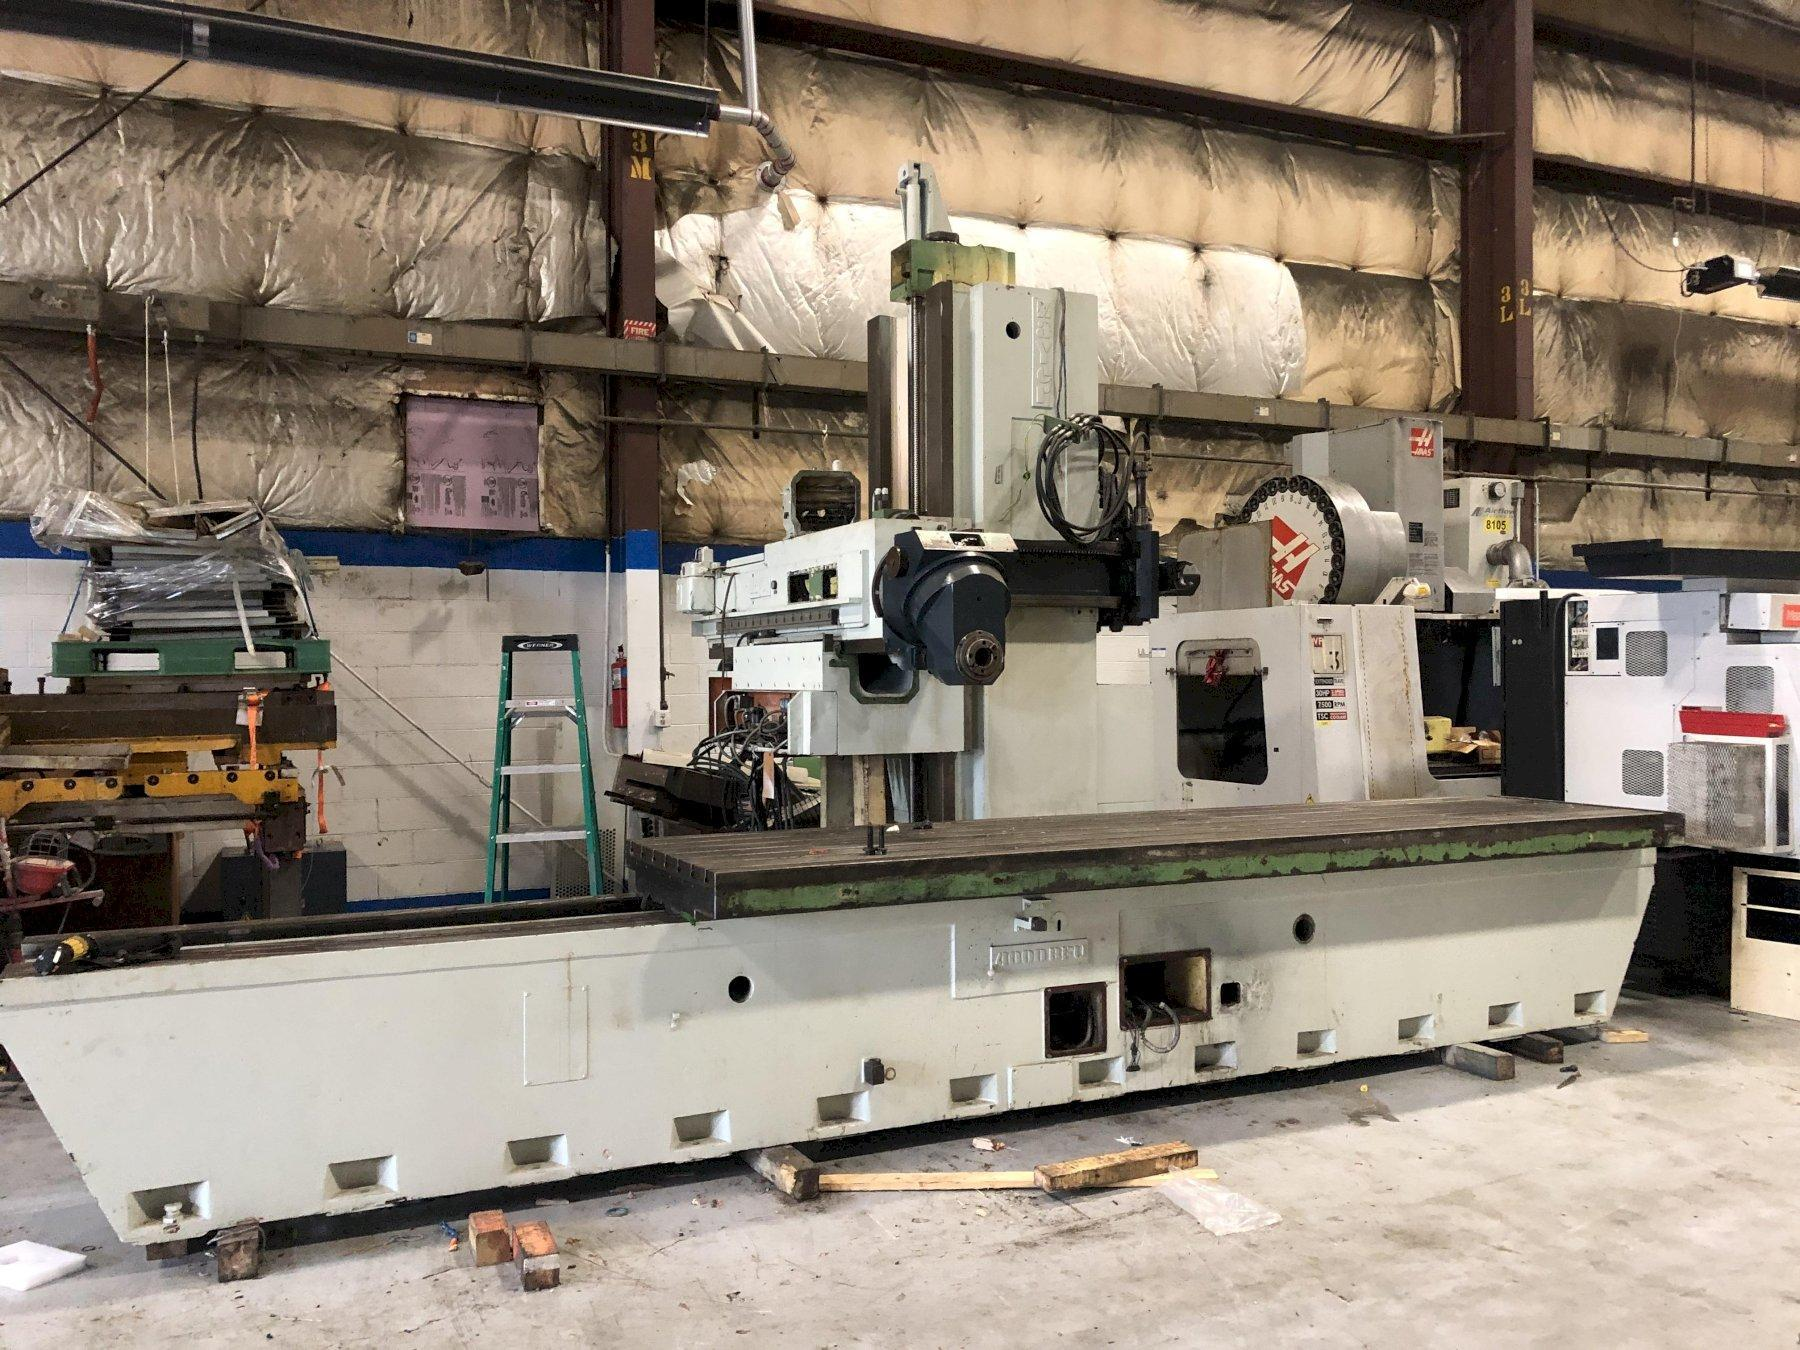 Zayer BFU 4000 Horizontal Boring Mill